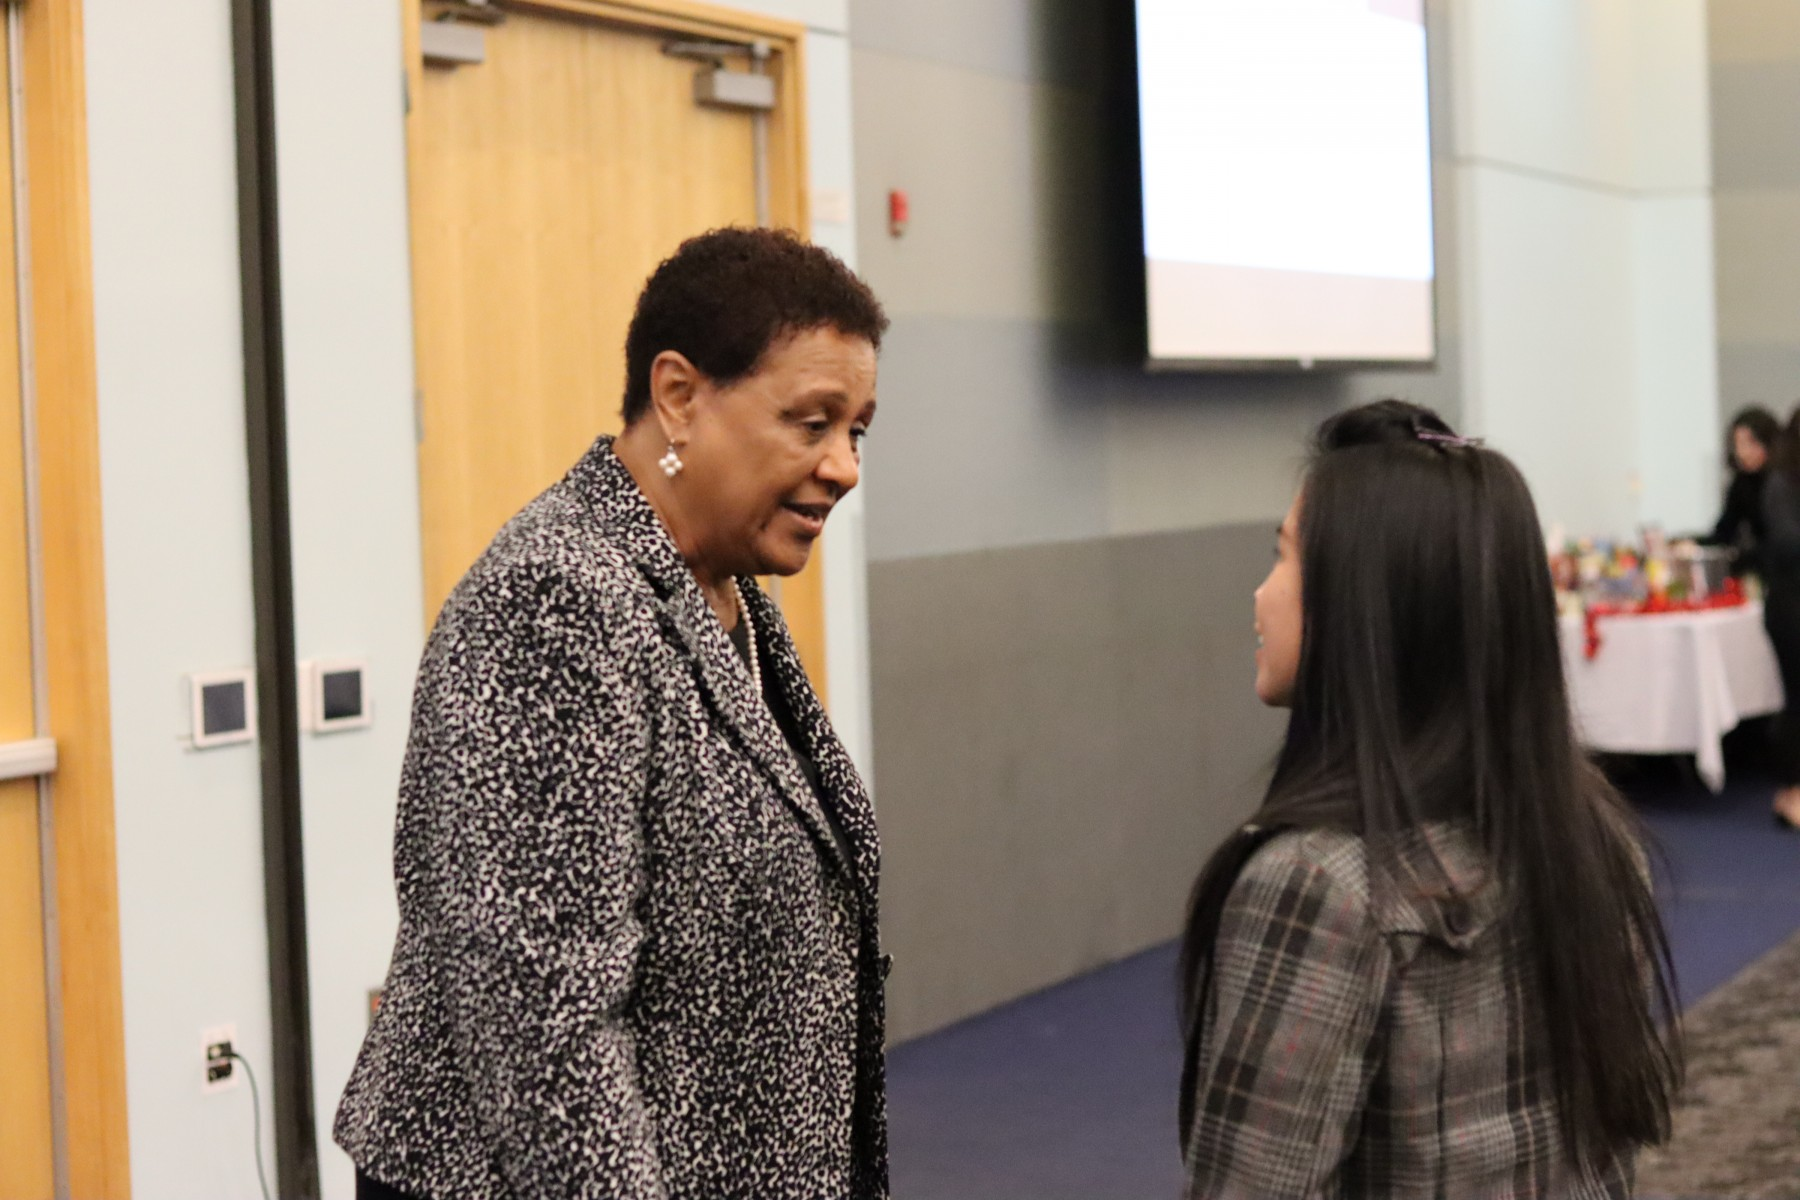 School of Nursing Director, Dr. Gail Washington talking to a nursing student.